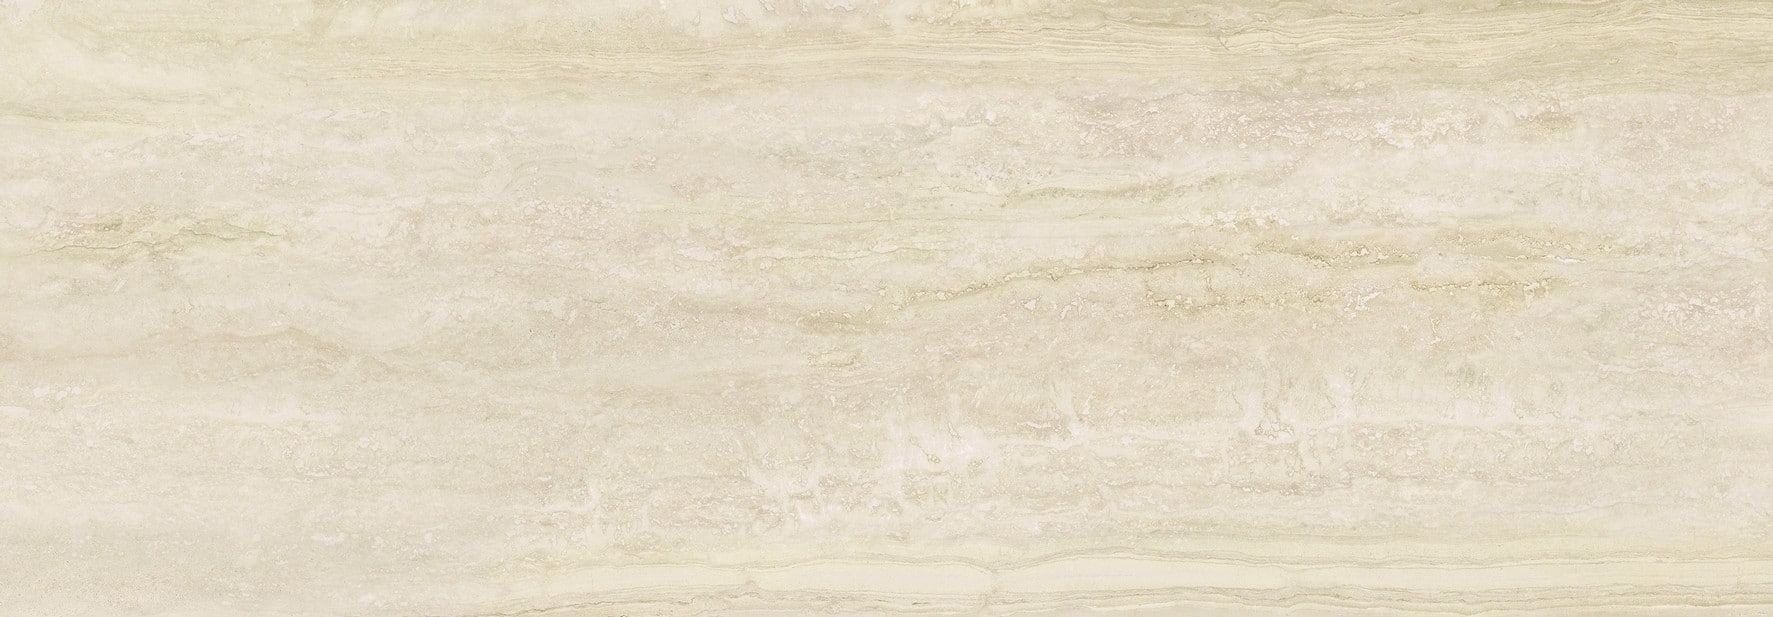 Marazzi Marbleplay Travertino 30-90 cm M4NY-